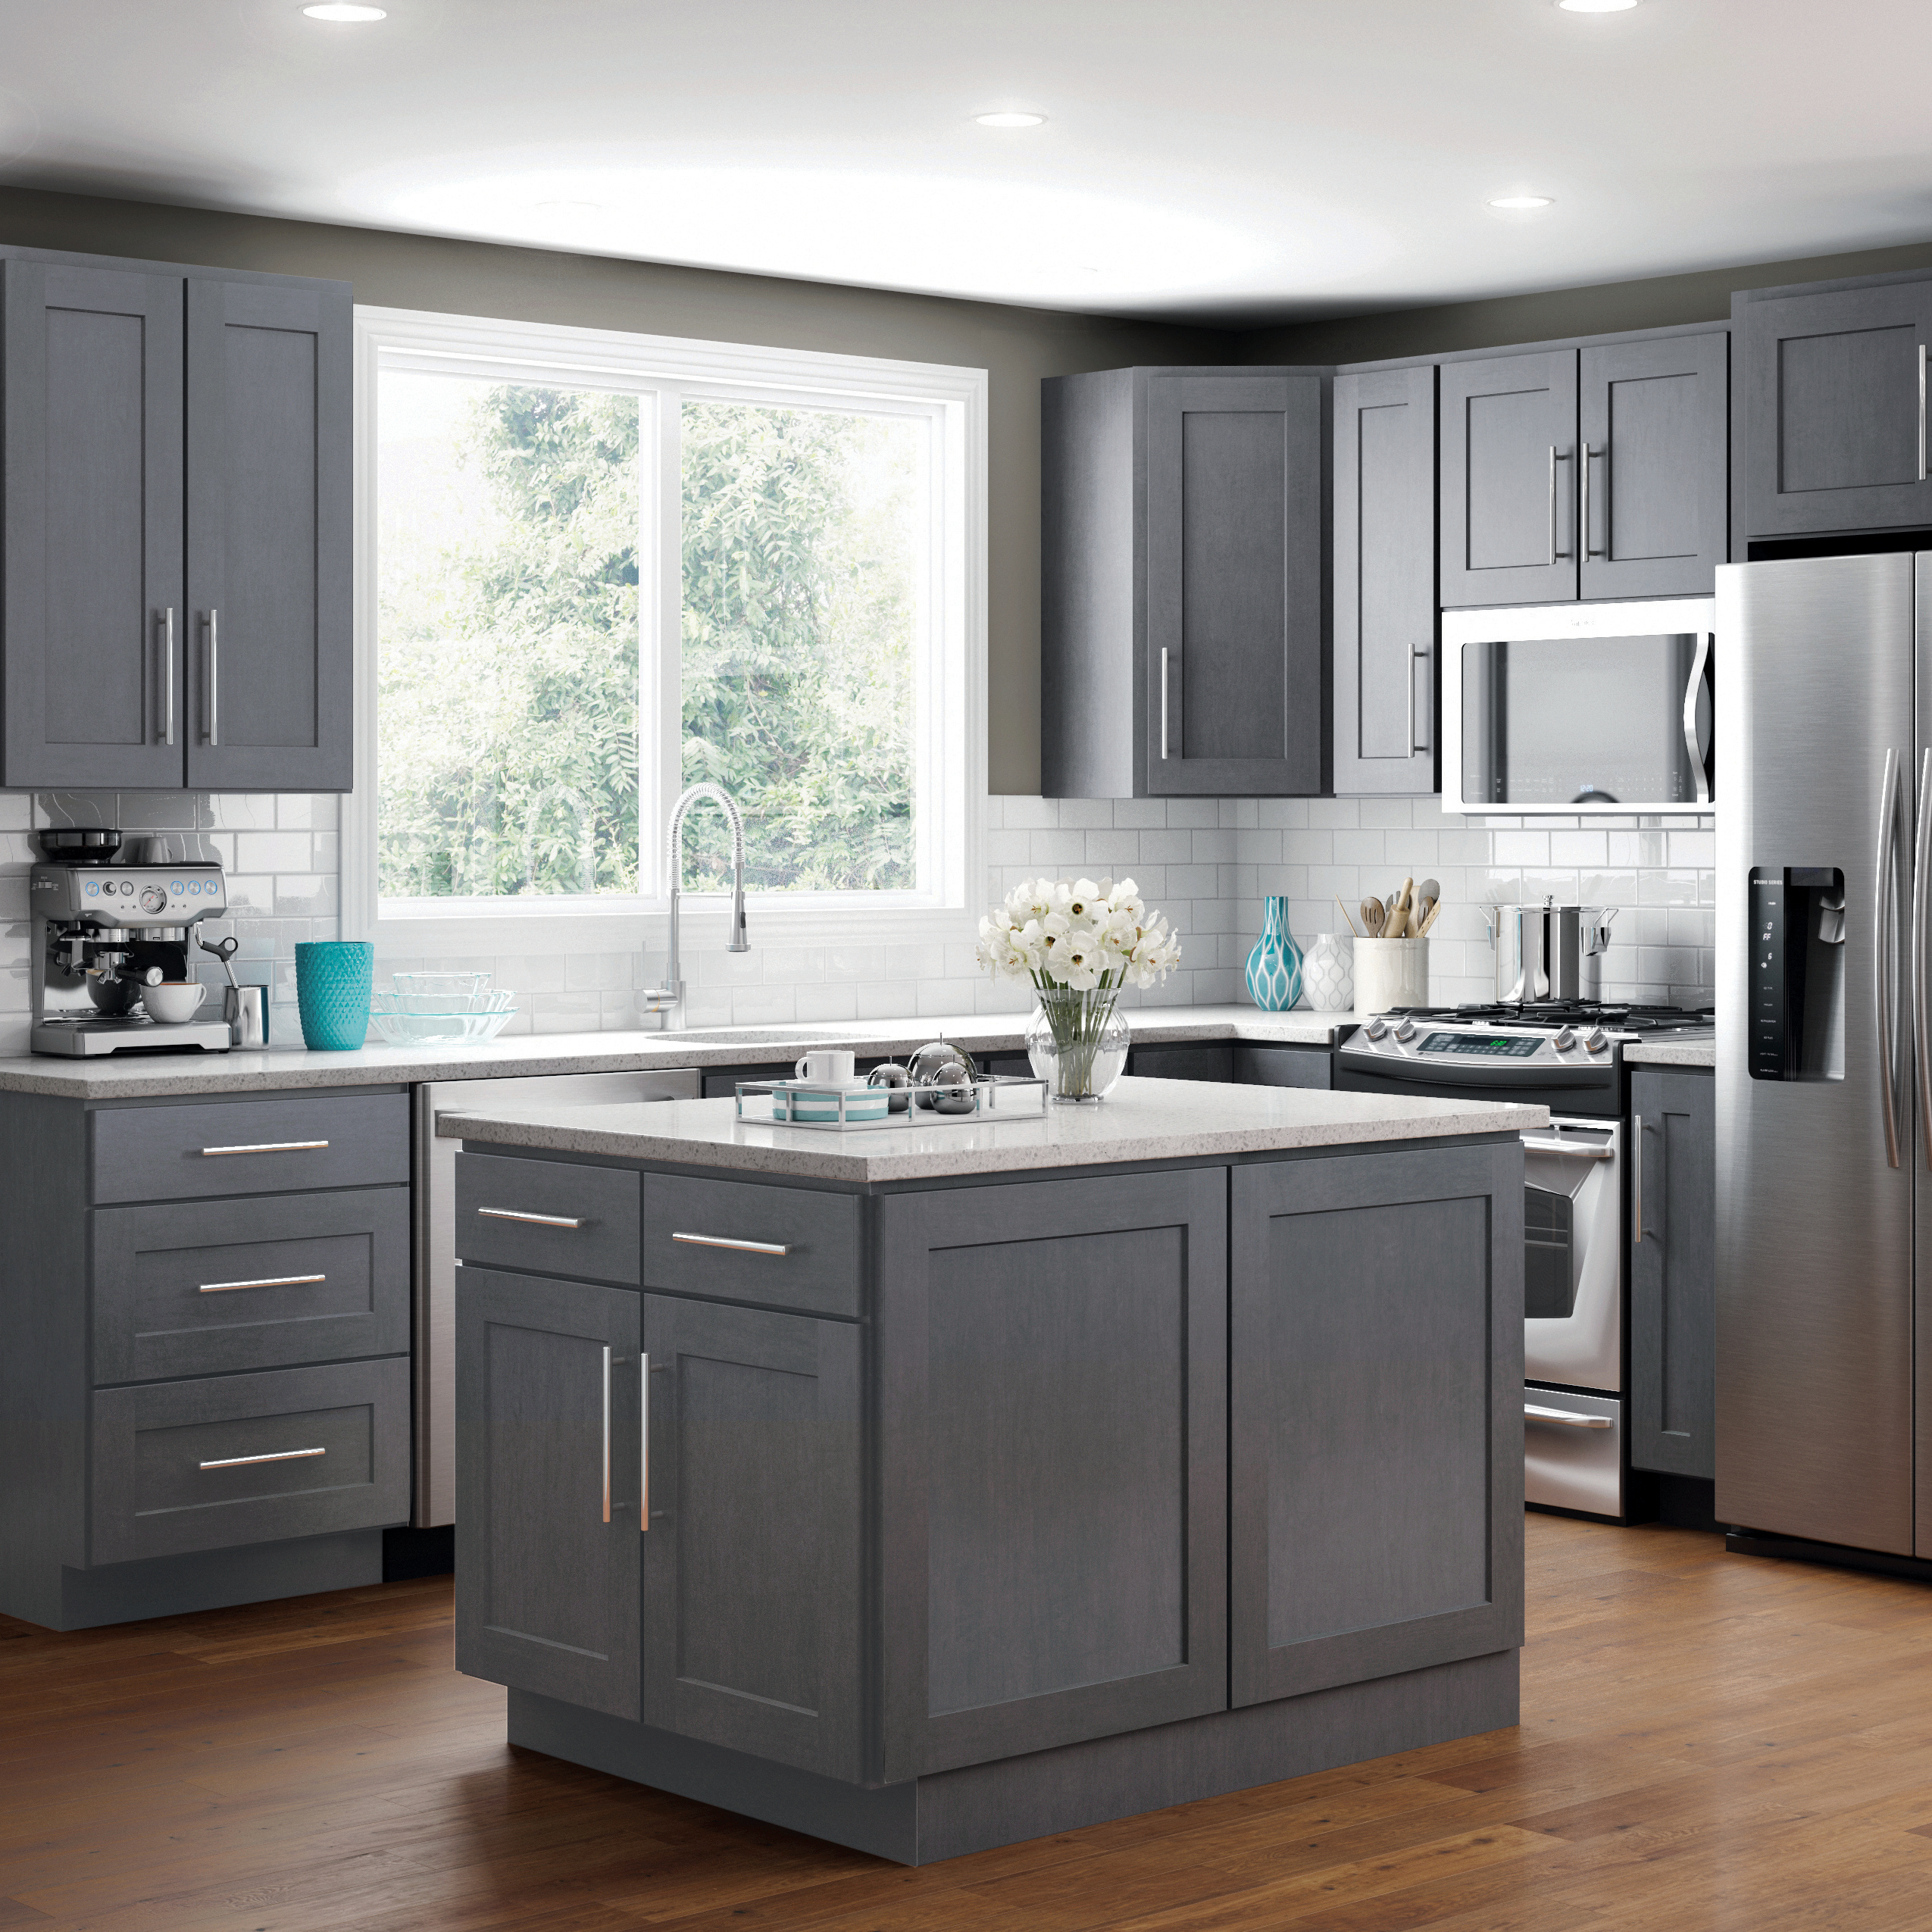 Our Rta Cabinets Ship Flat Packed Assembly Is Required In 2020 Tiny House Kitchen Kitchen Remodel Small Square Kitchen Layout